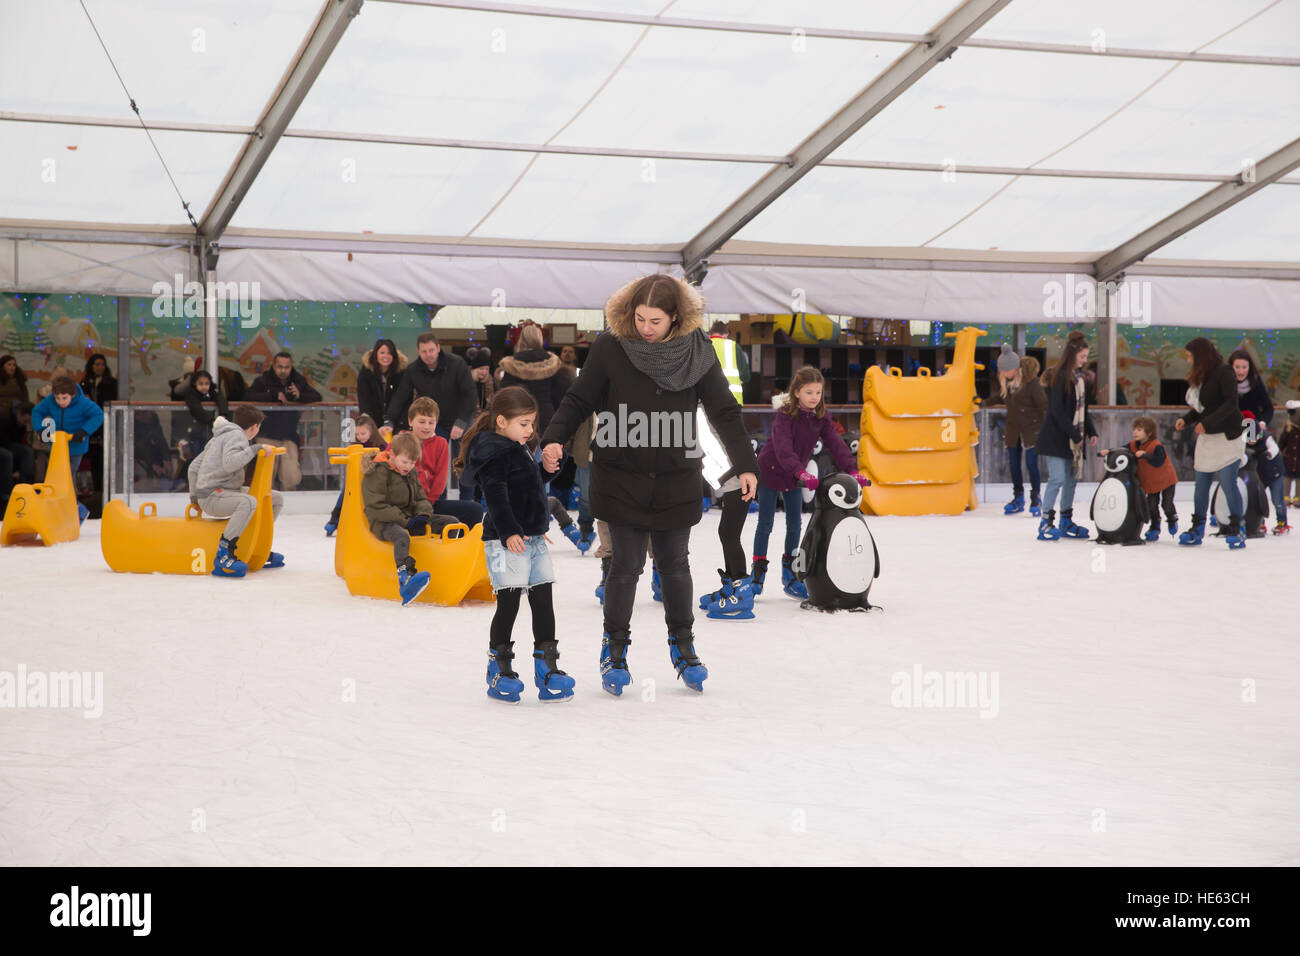 sidcup uk 18th dec 2016 families ice skate and enjoy the